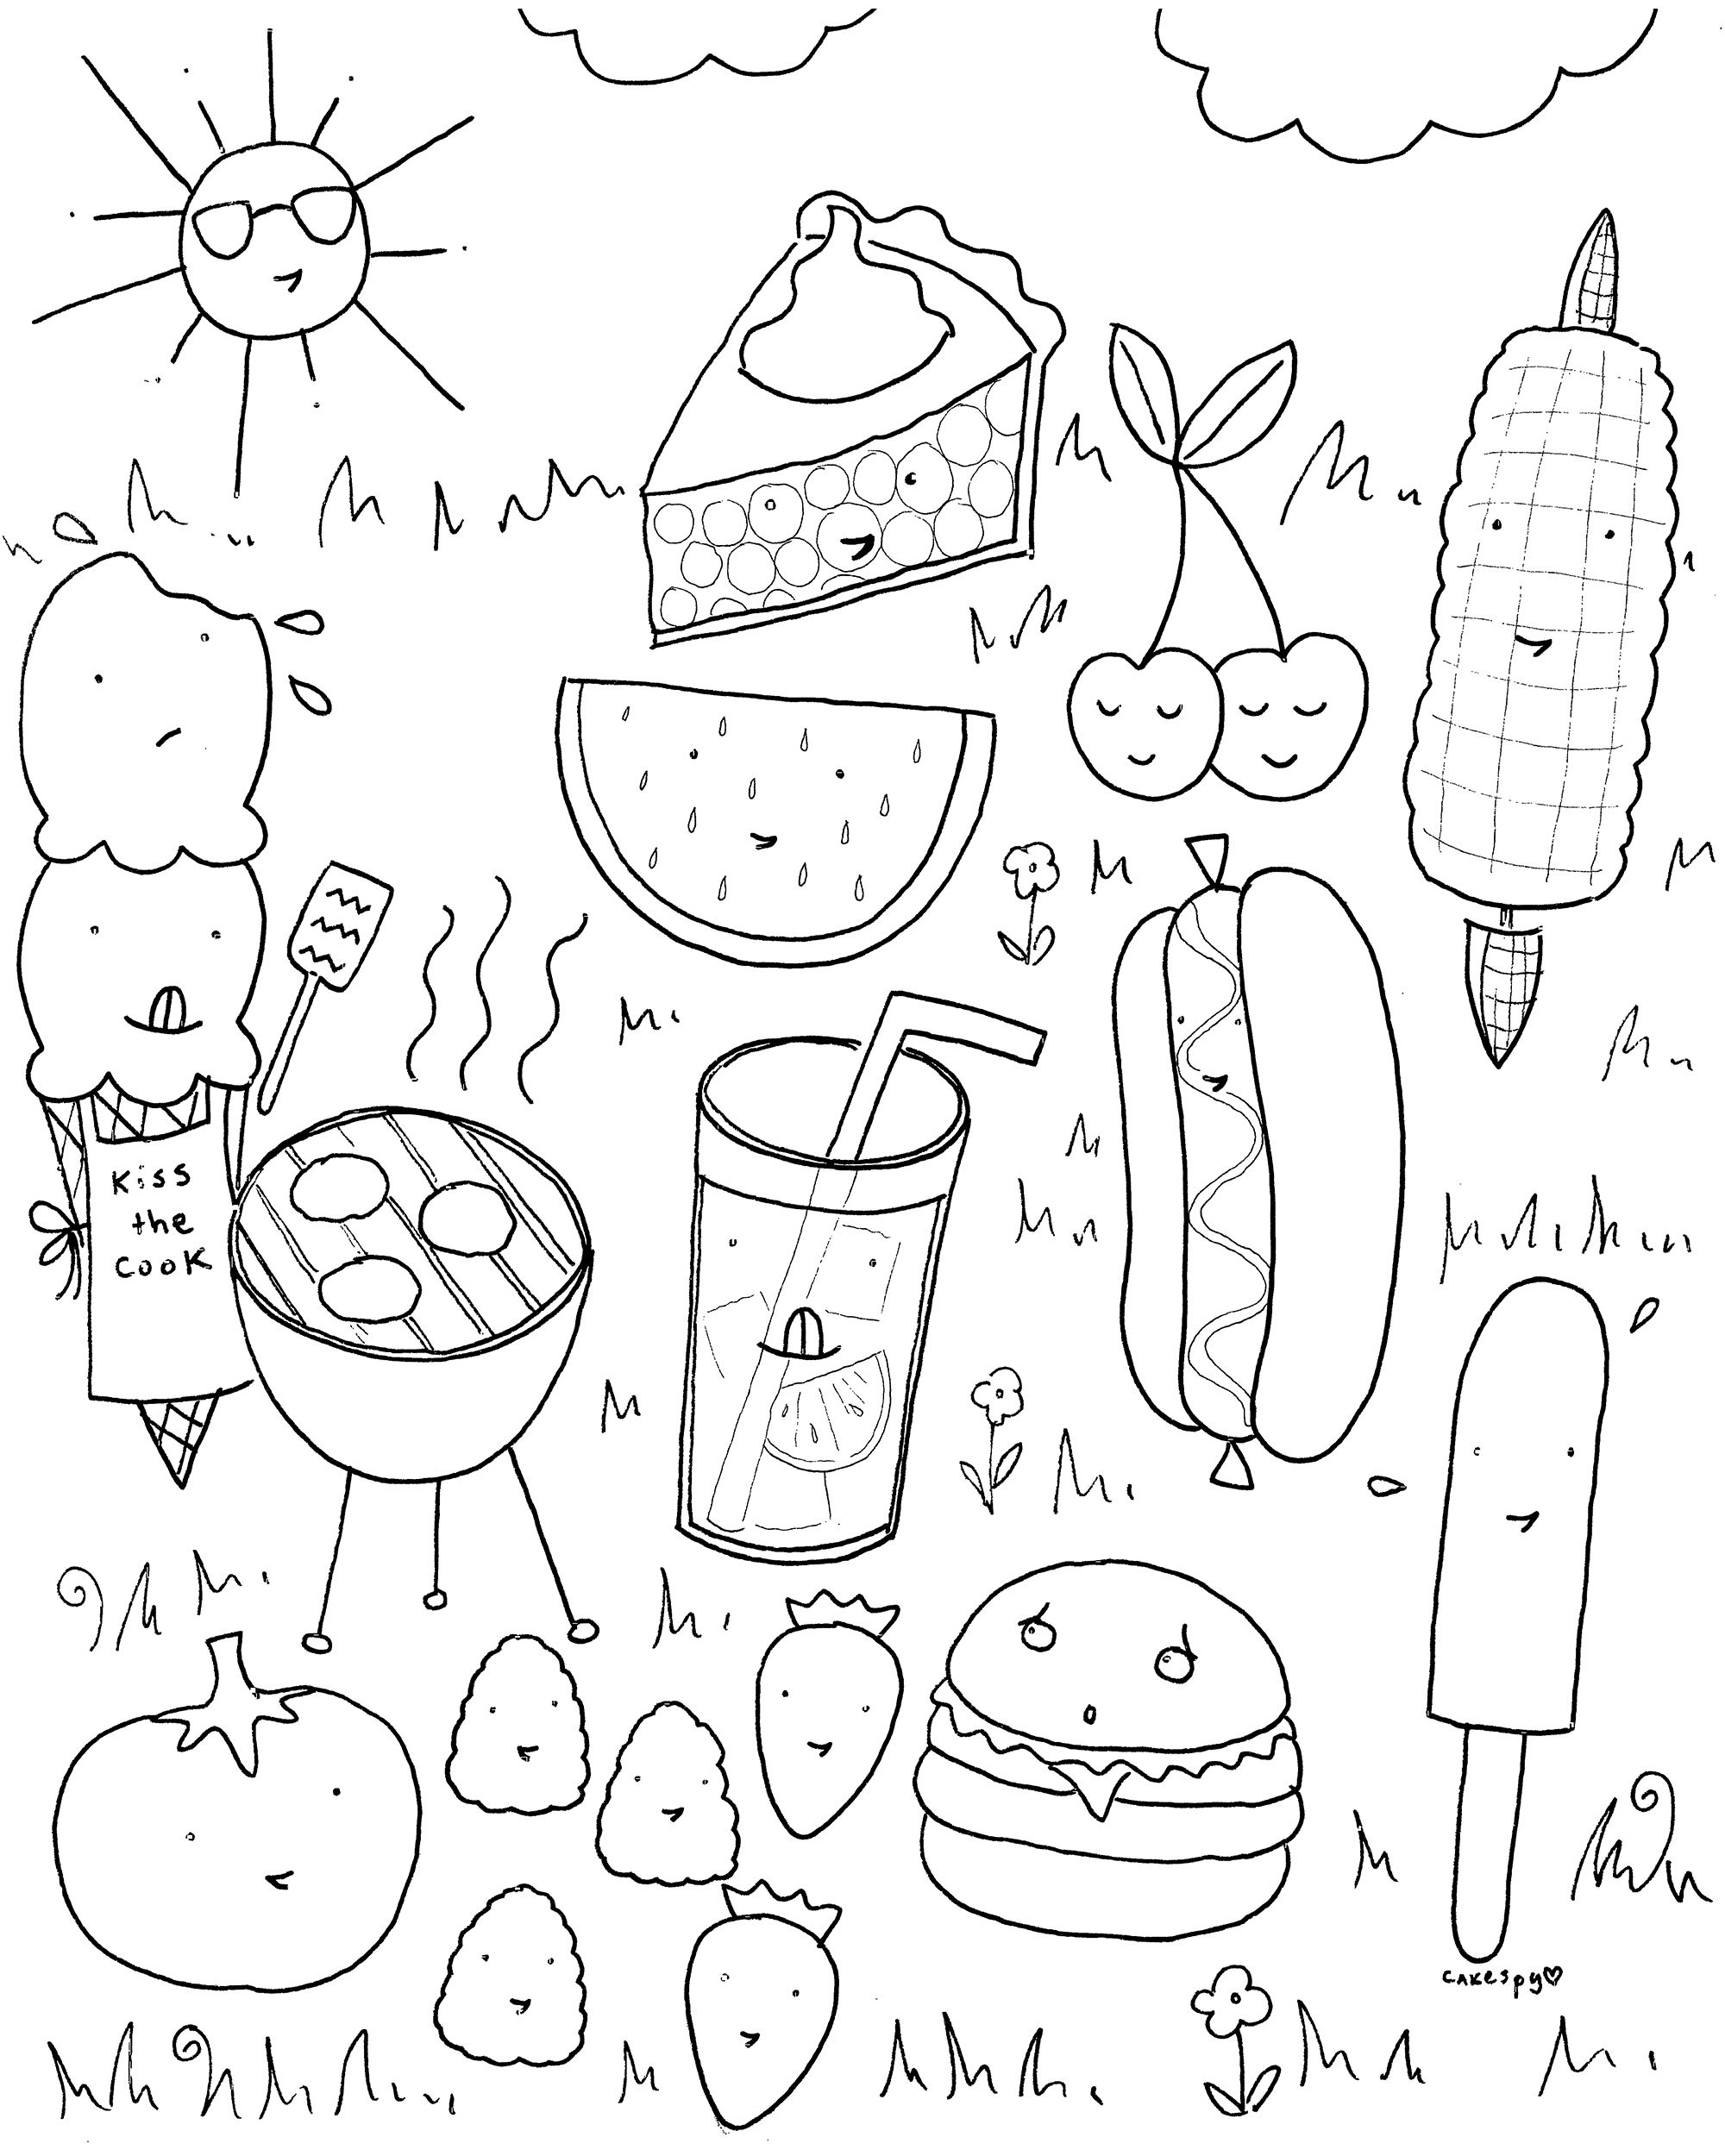 Craftsy Com Express Your Creativity Cool Coloring Pages Summer Coloring Sheets Free Coloring Pages